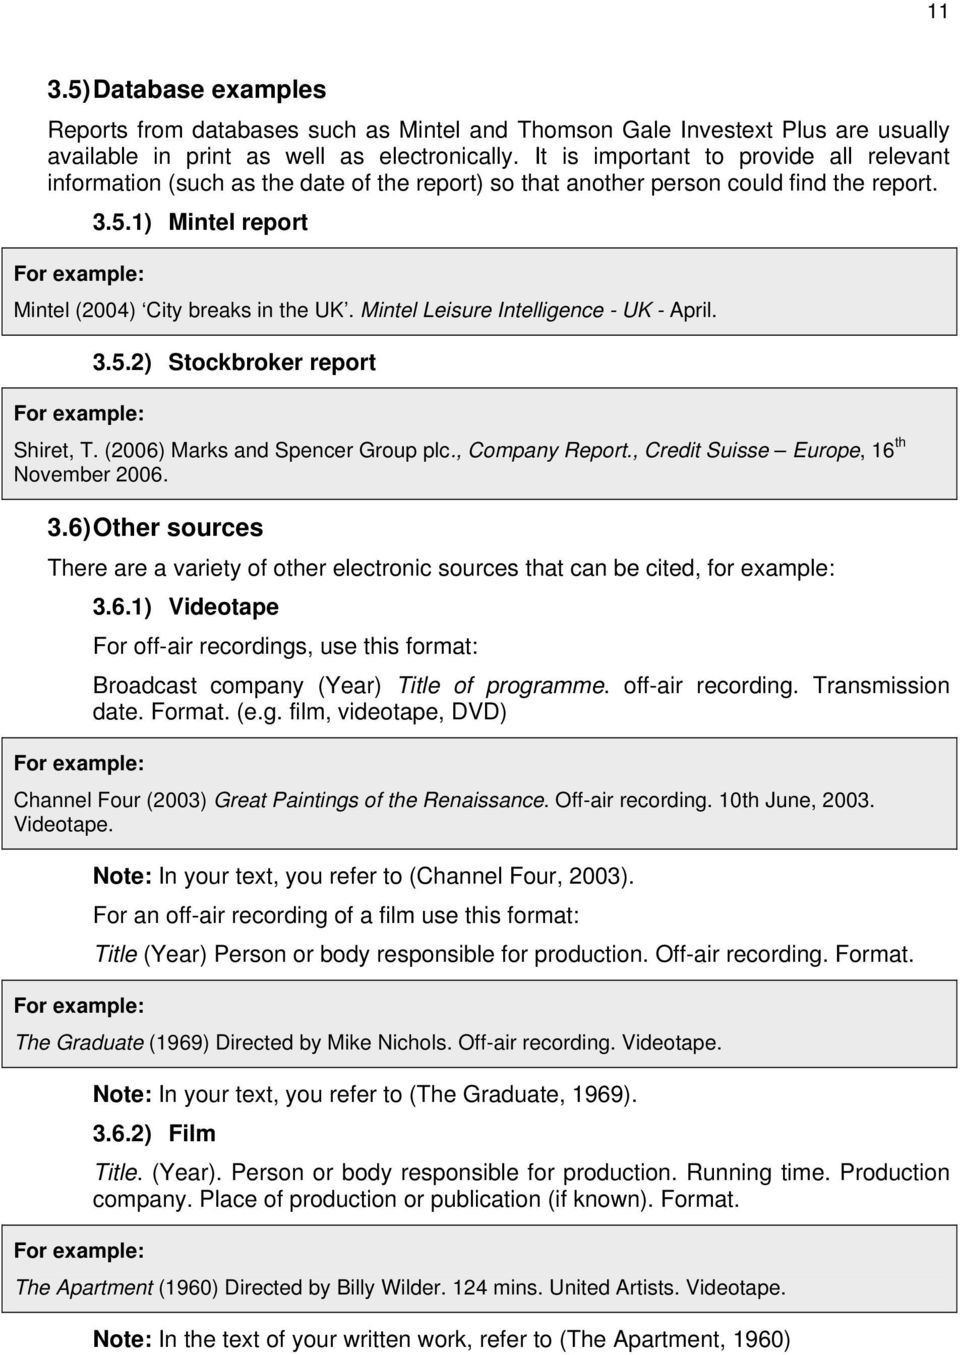 Mintel Leisure Intelligence - UK - April. 3.5.2) Stockbroker report Shiret, T. (2006) Marks and Spencer Group plc., Company Report., Credit Suisse Europe, 16 th November 2006. 3.6) Other sources There are a variety of other electronic sources that can be cited, for example: 3.